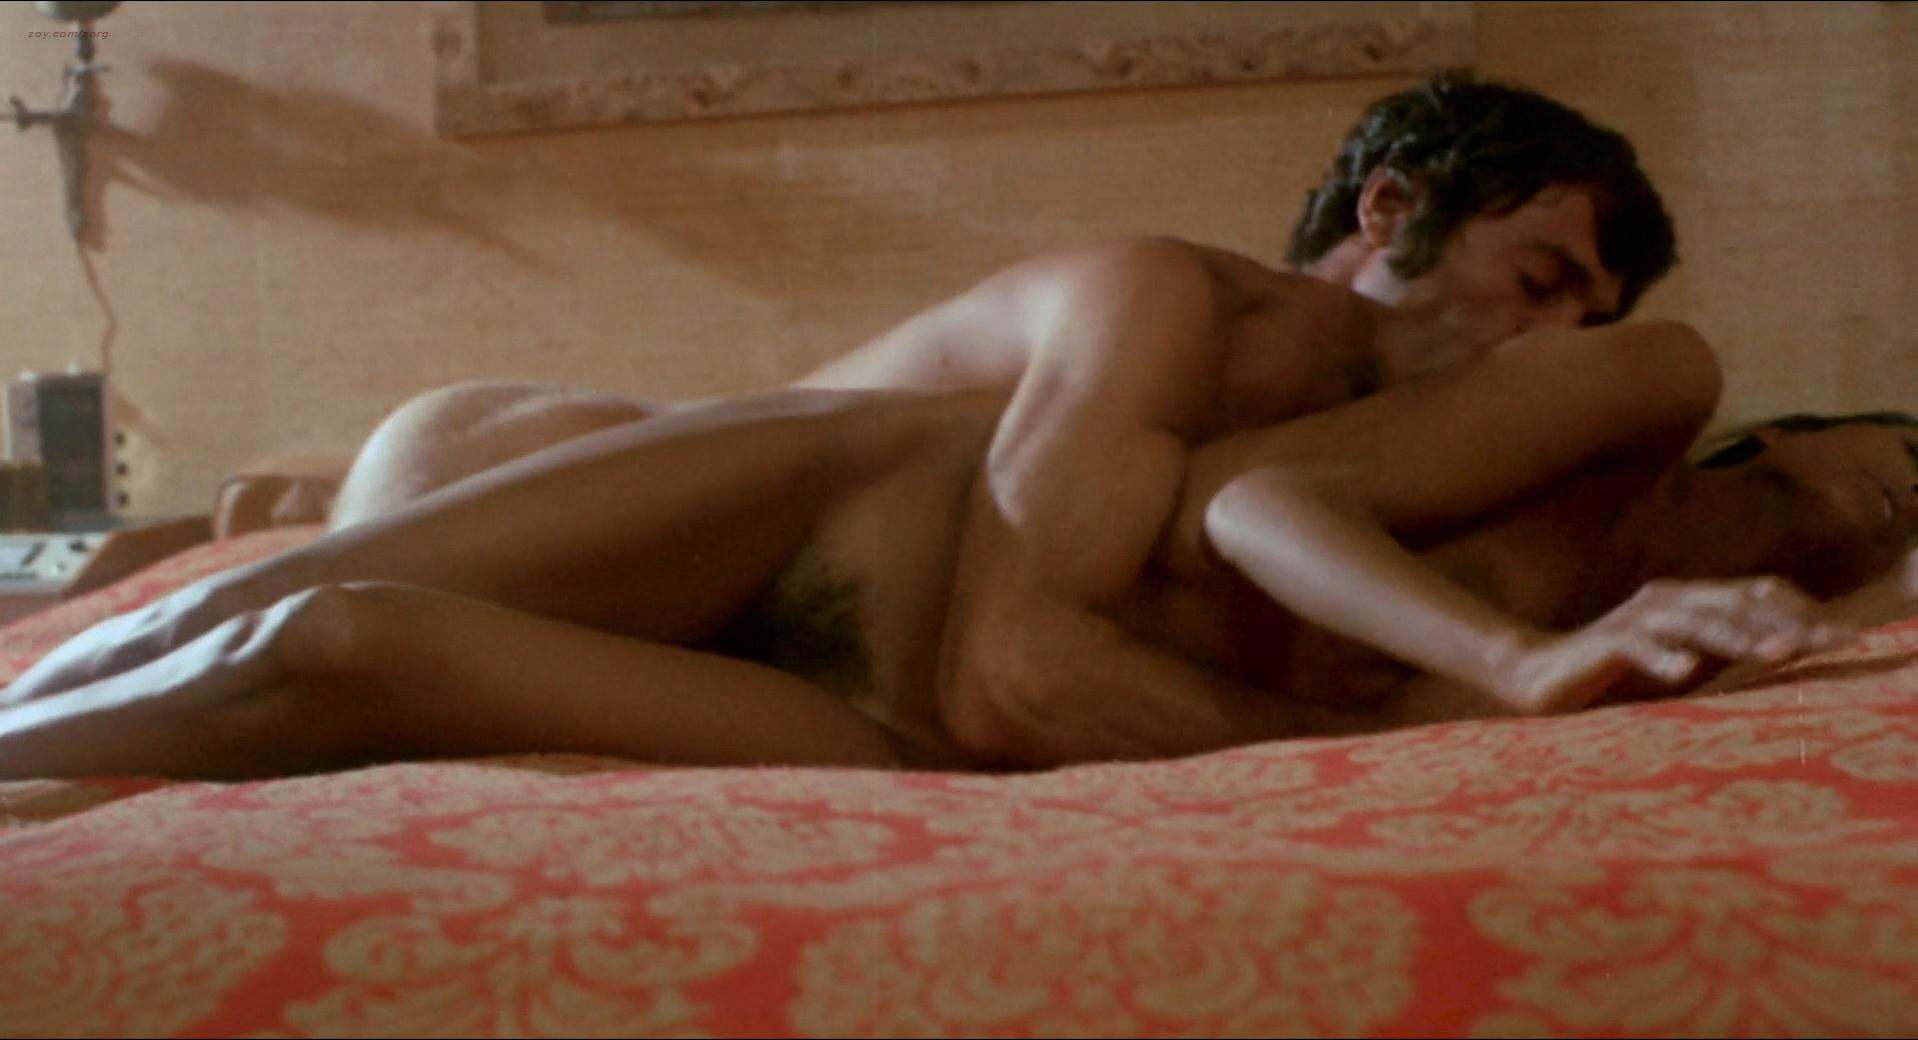 Laura Gemser nude, Monica Zanchi nude, Nieves Navarro nude, Dirce Funari nude - Emanuelle and the Last Cannibals (1977)